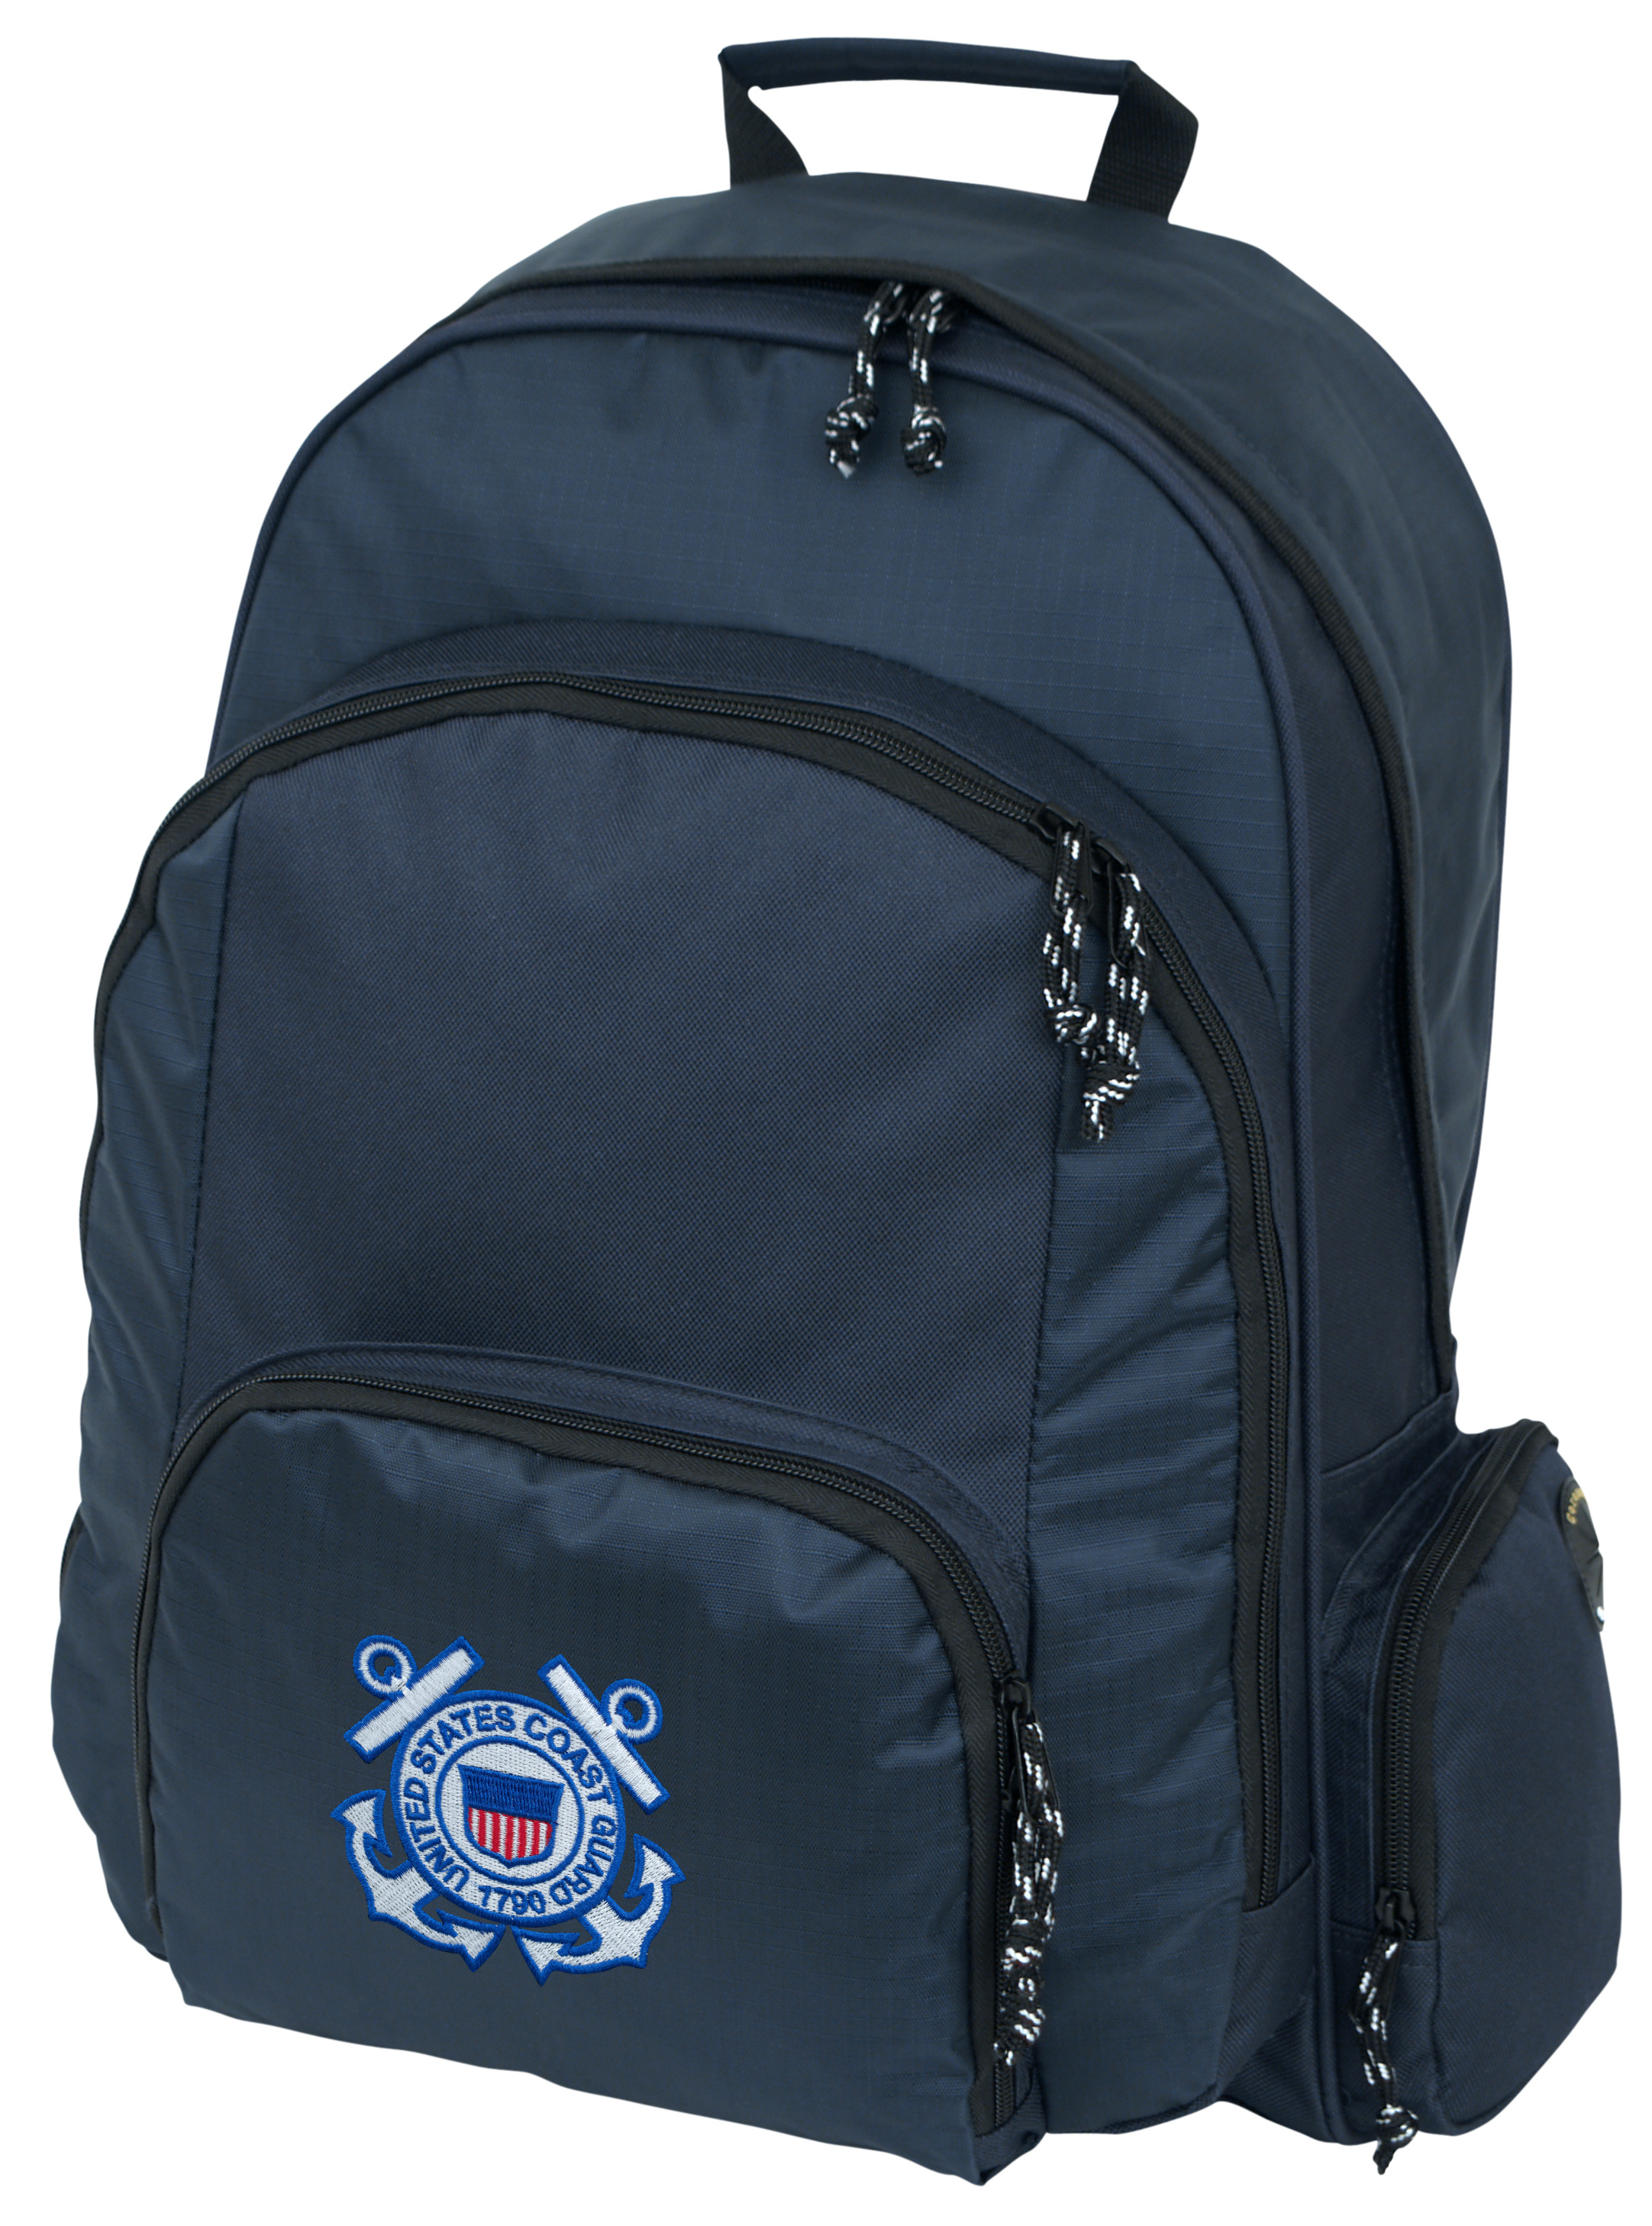 CG Ripstop Large Backpack